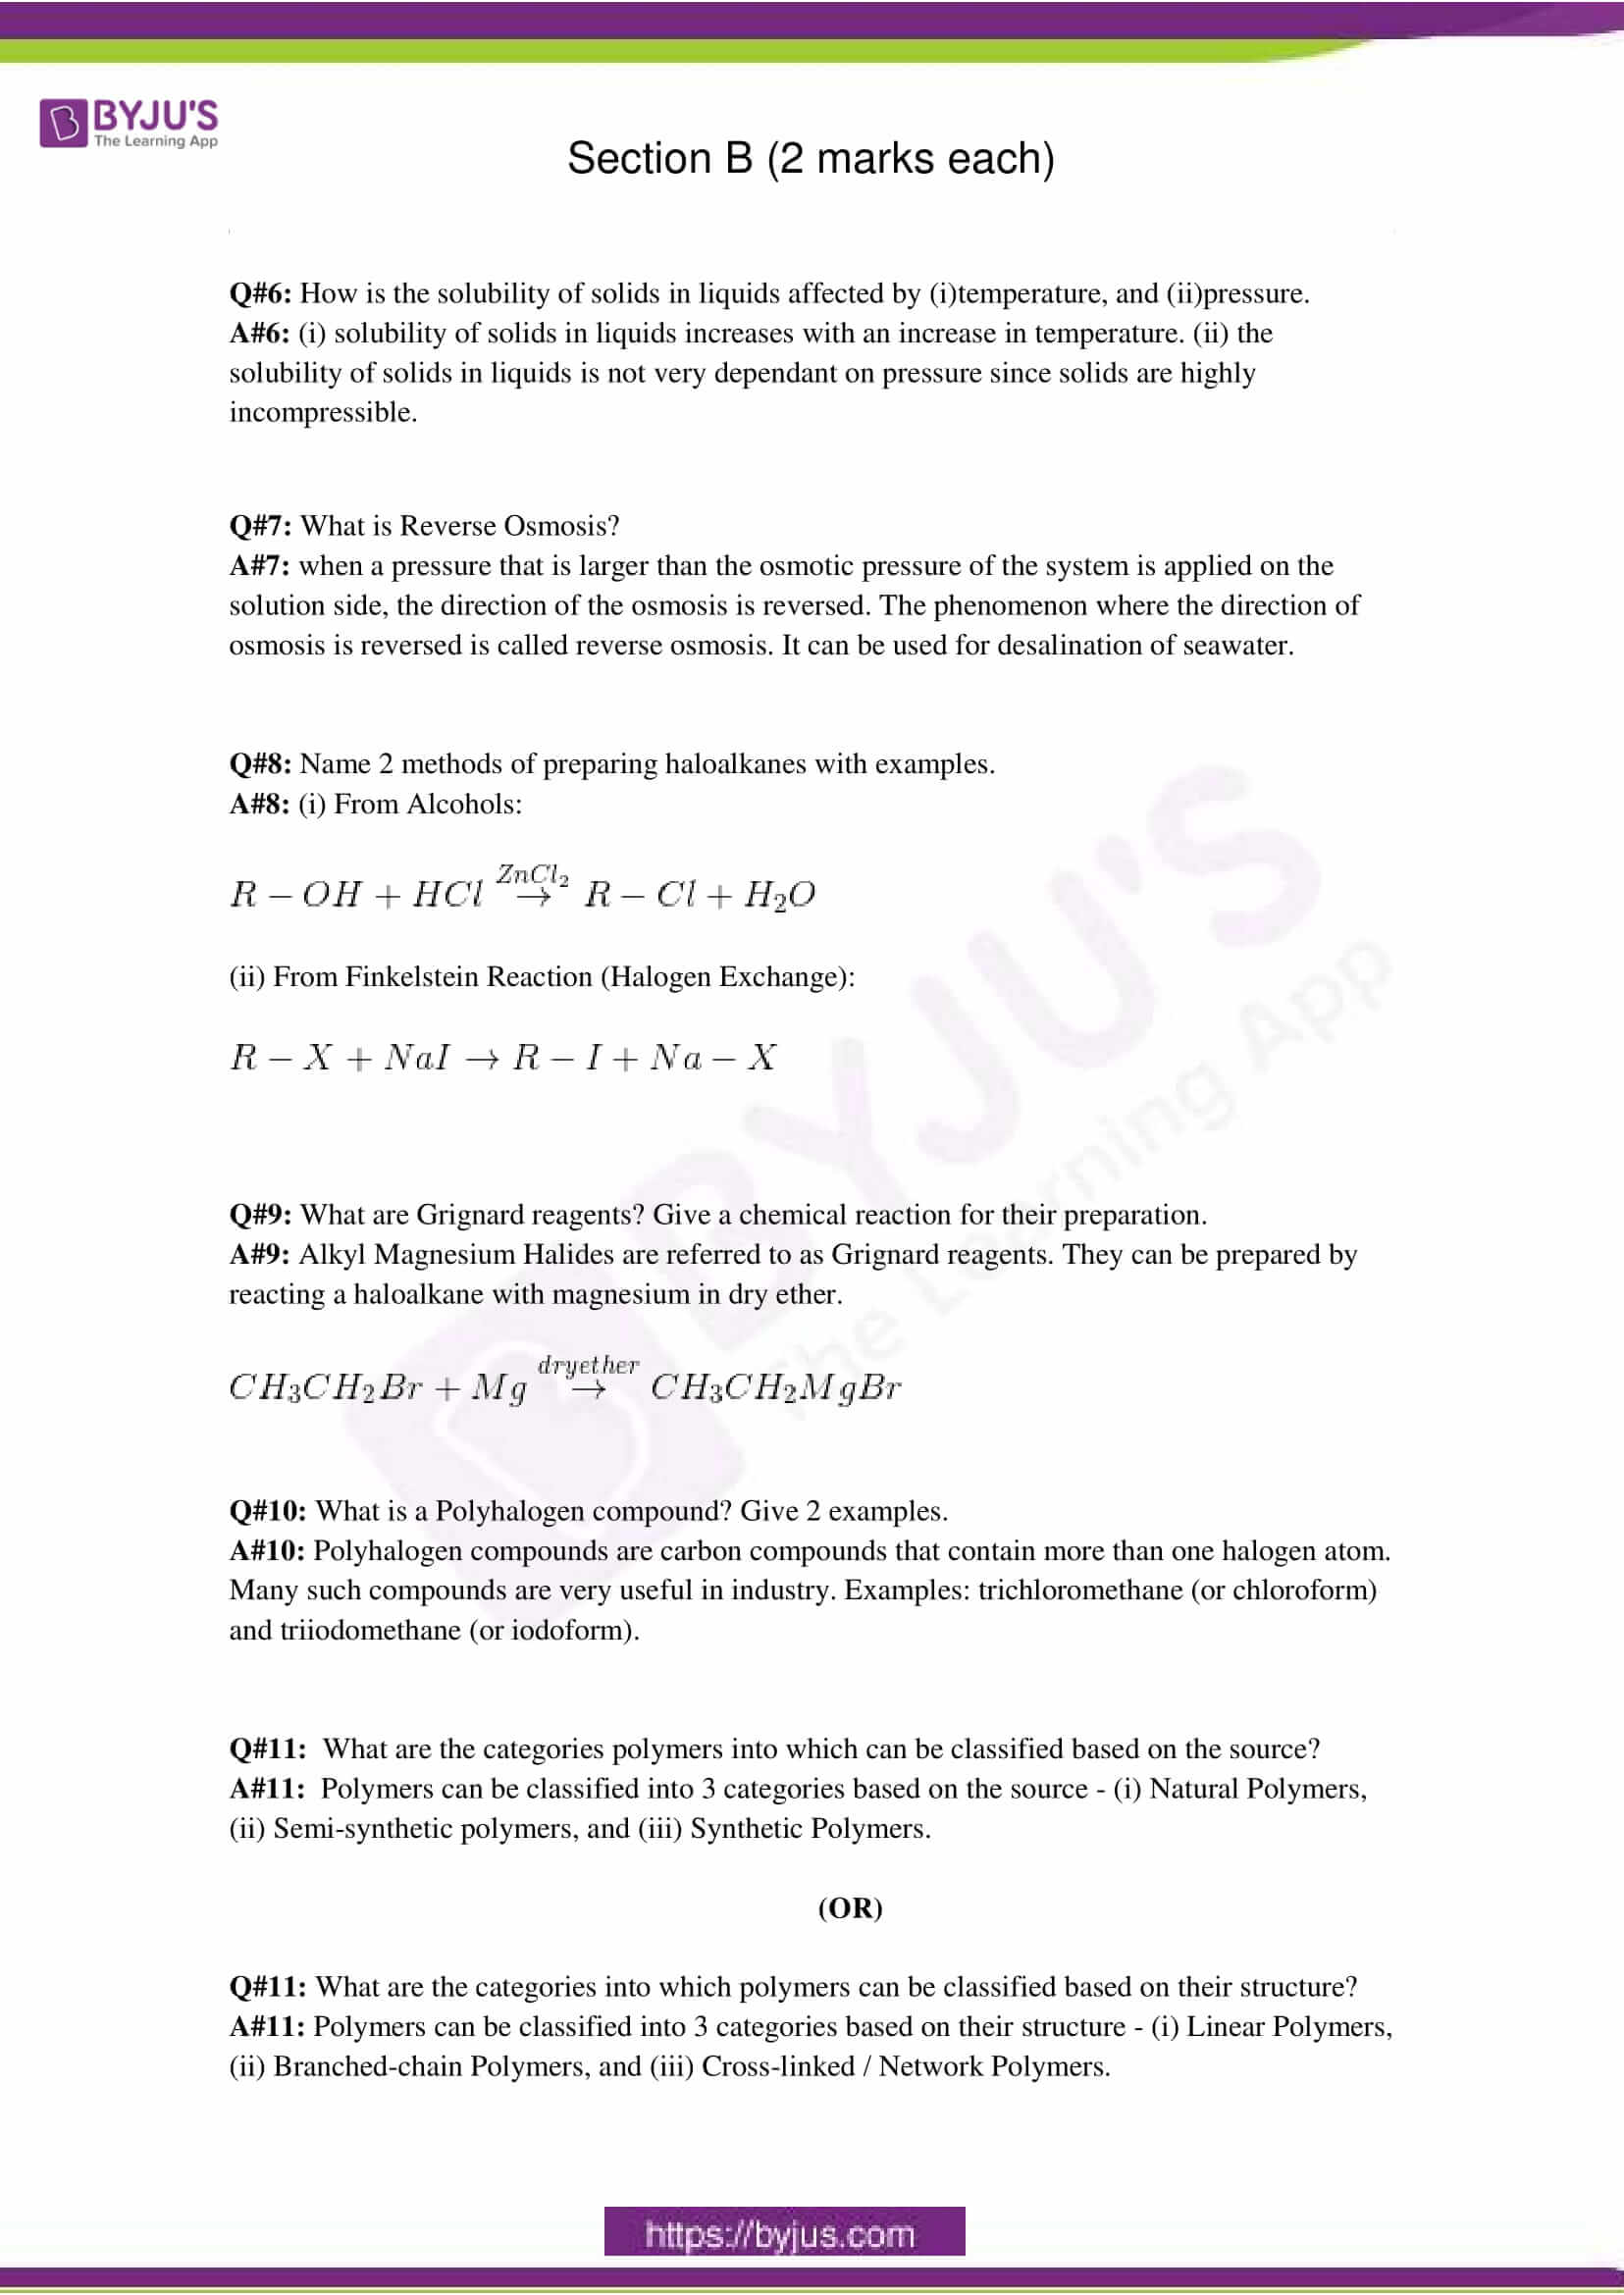 cbse class 12 chemistry sample paper solution set 3